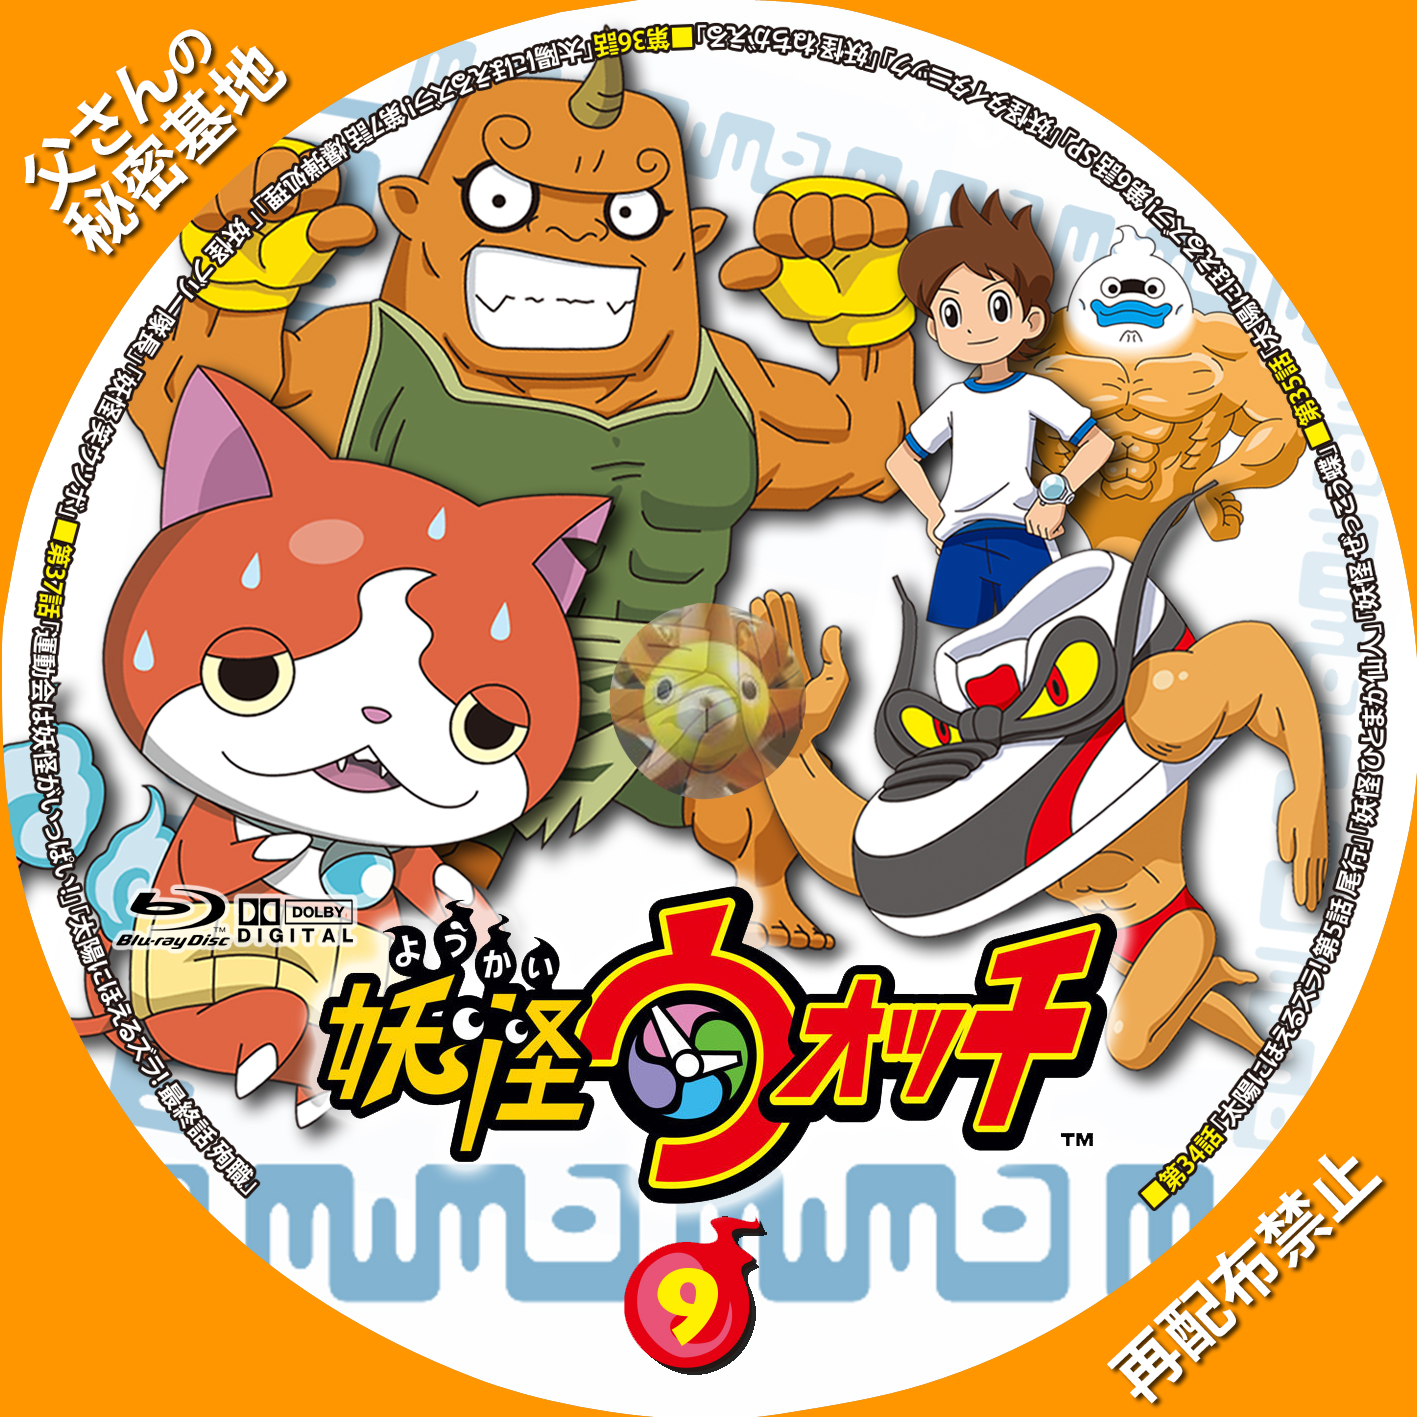 youkai-watch_09BDa.jpg